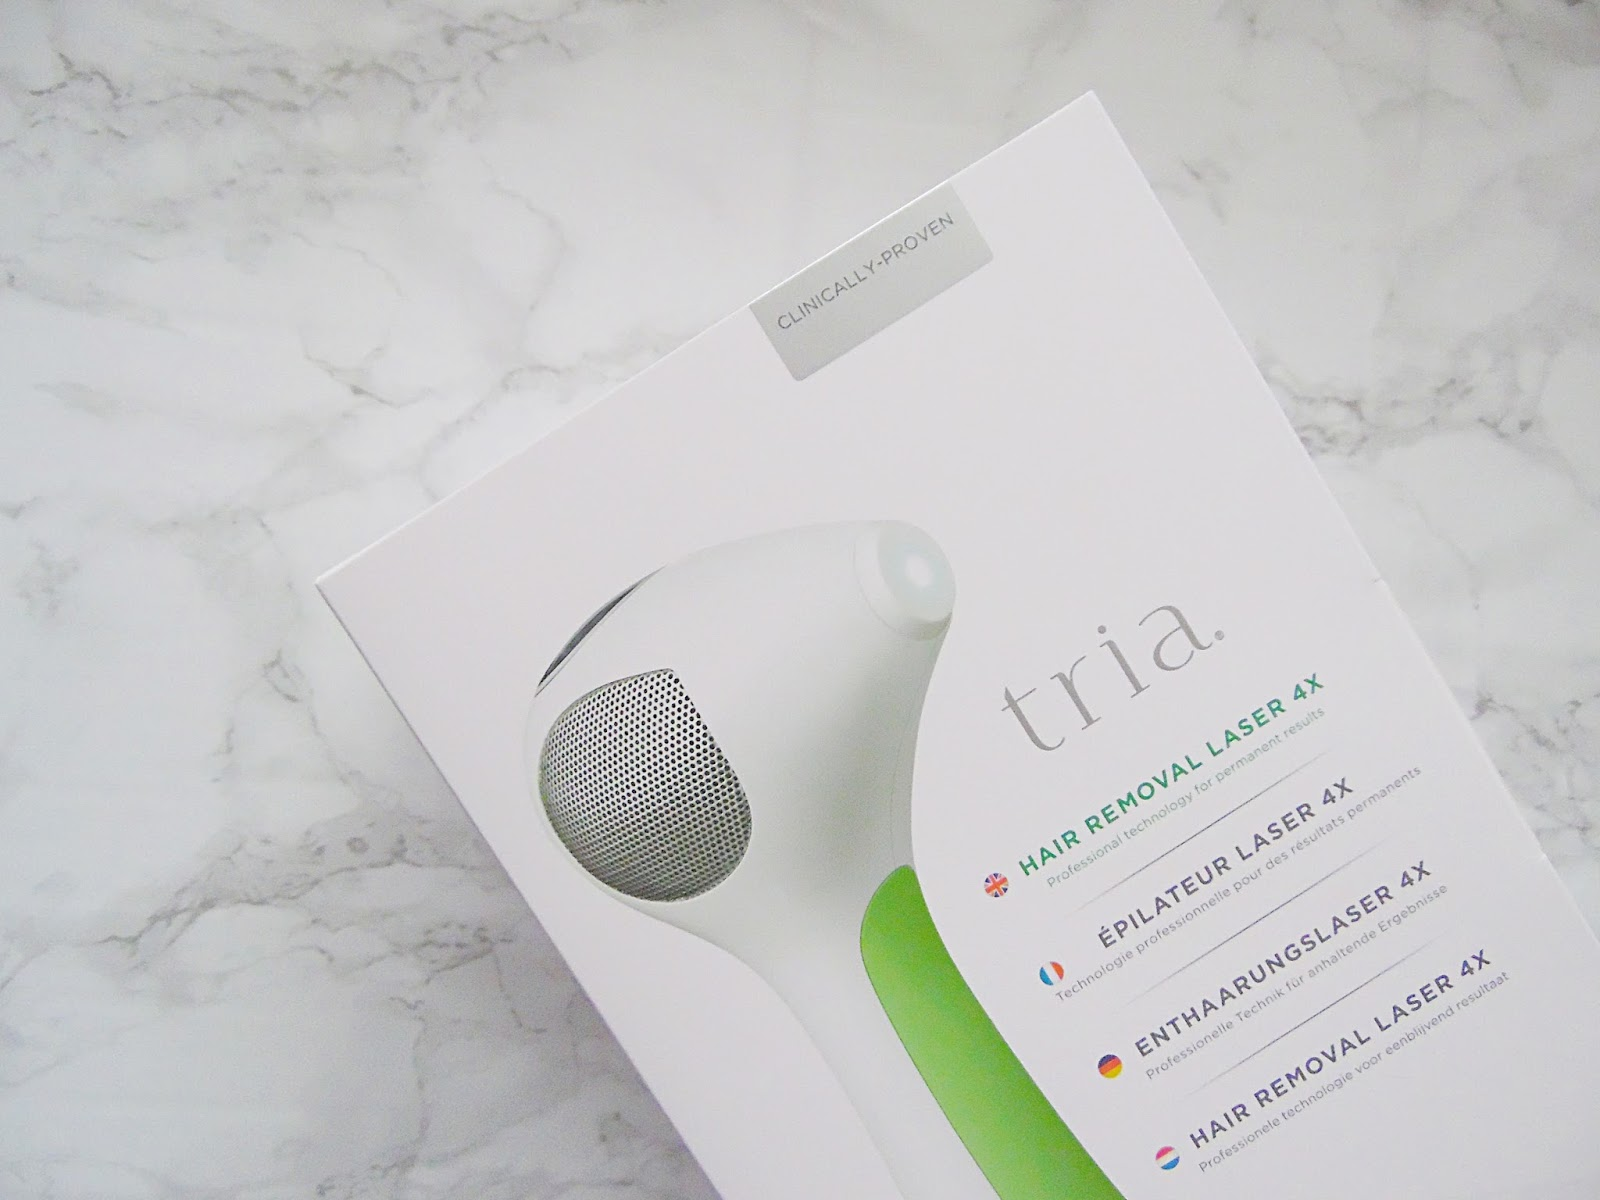 Tria Beauty At Home Laser Hair Removal Six Week Update